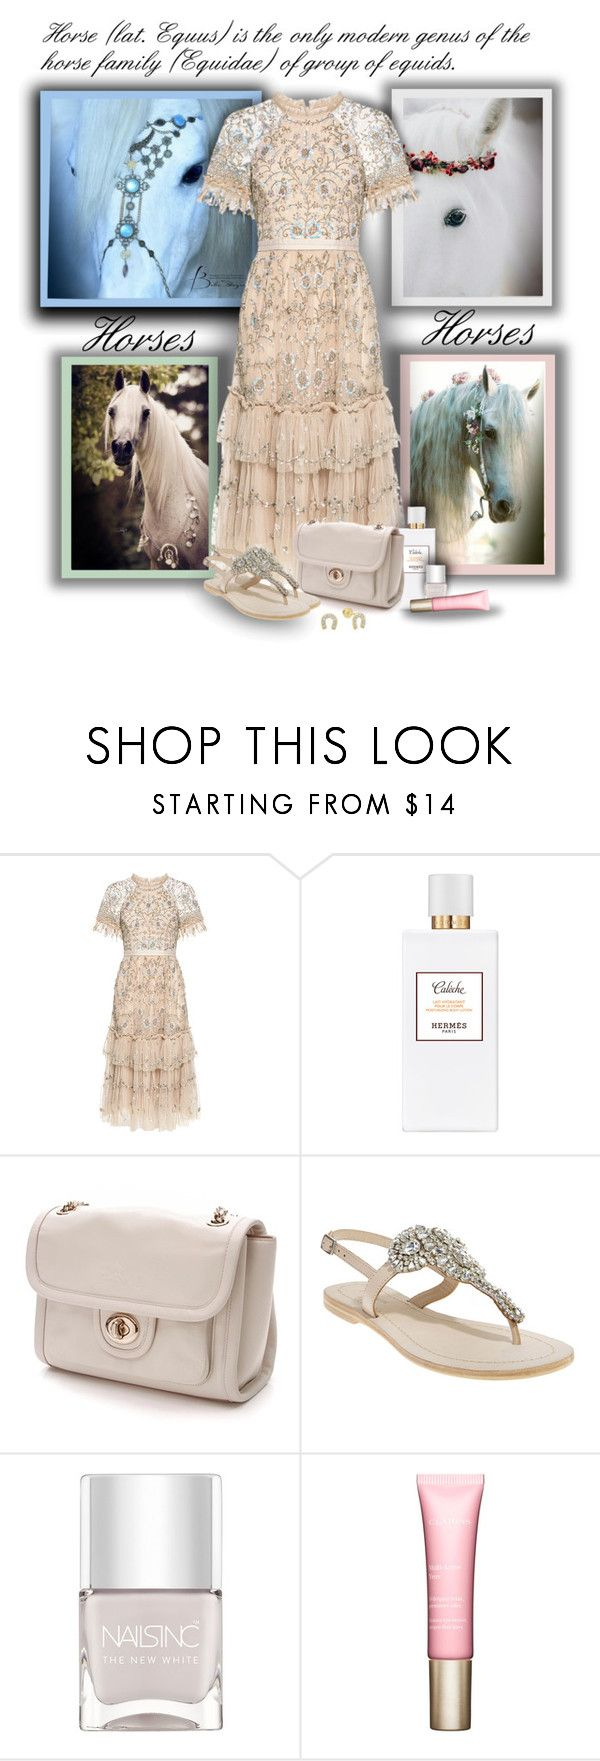 """""""Horses!!!"""" by sarahguo ❤ liked on Polyvore featuring Needle & Thread, Hermès, Coach, Antik Batik, Nails Inc. and Clarins"""